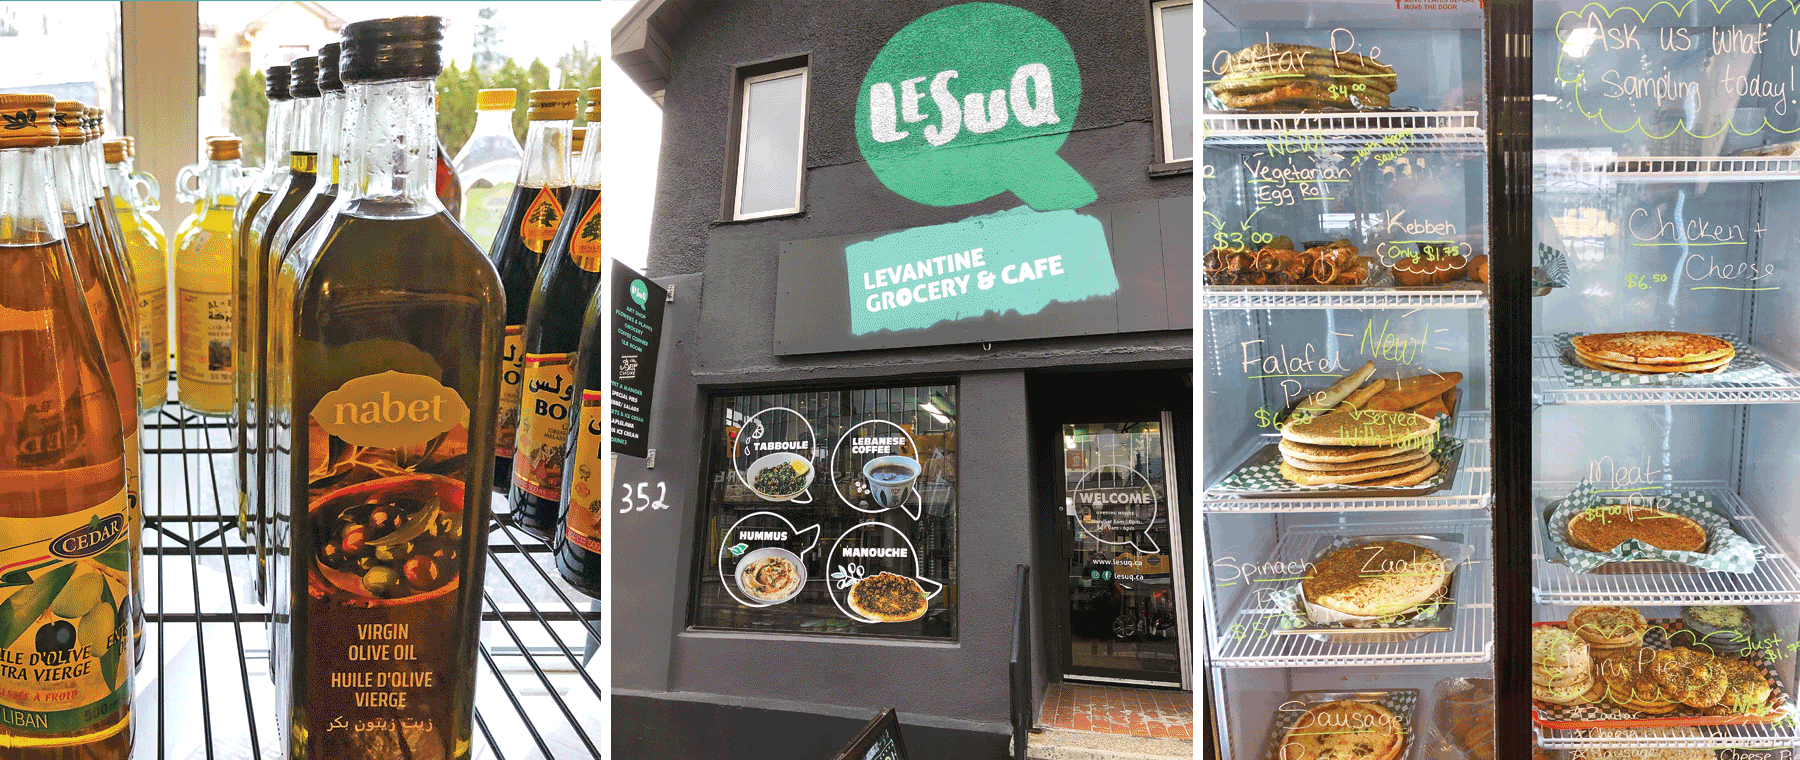 Le Suq, Fairouz, and Noor: Getting to know 3 new Middle Eastern eateries